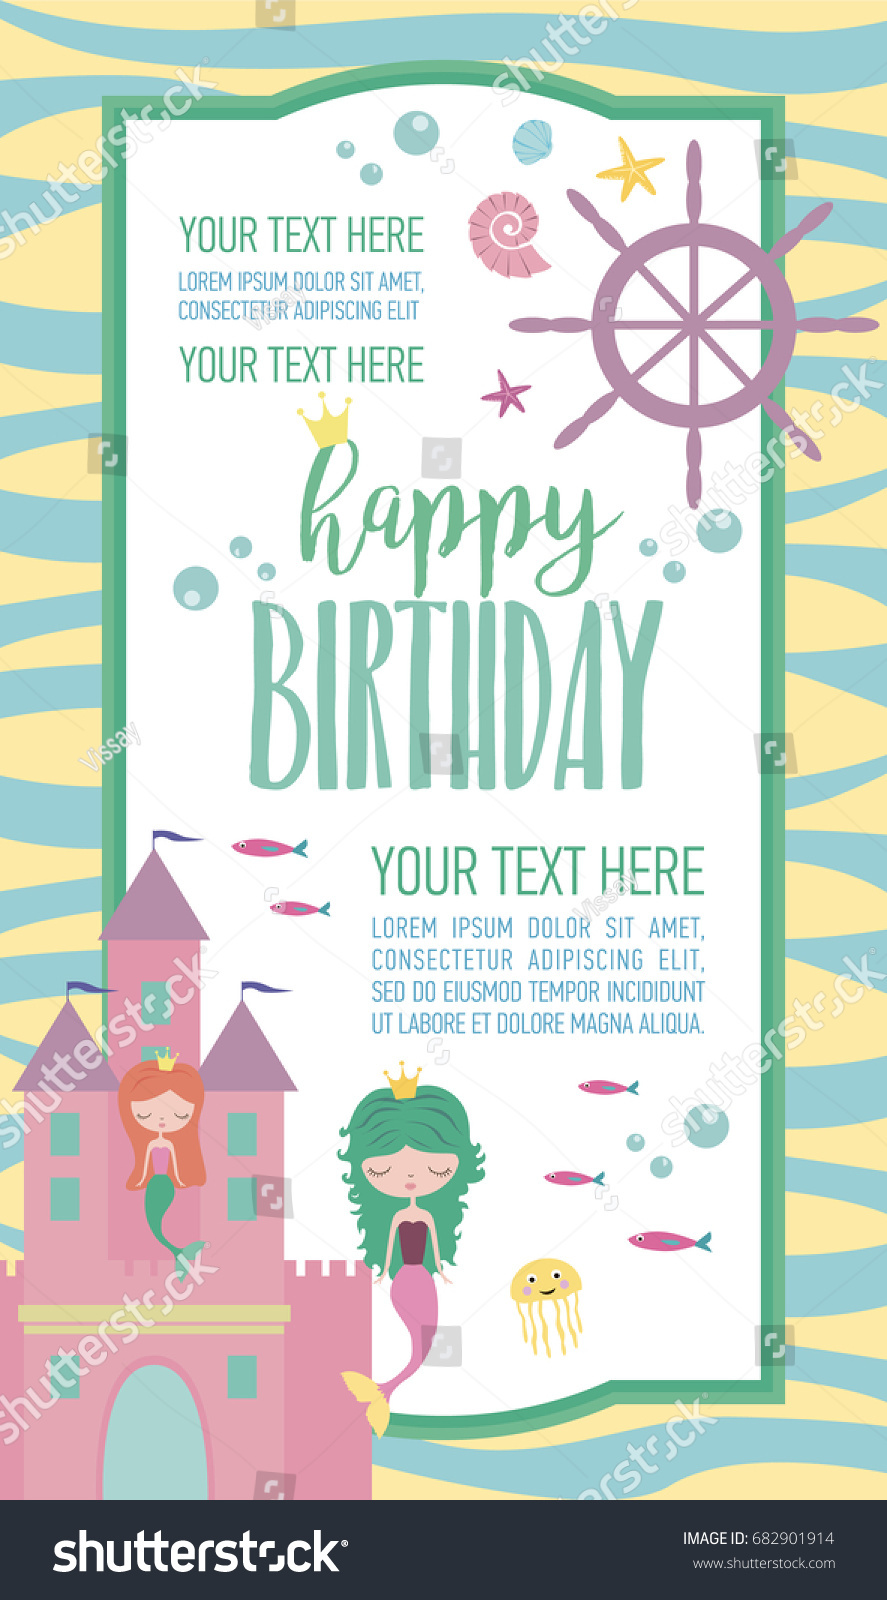 Happy birthday invitation party greeting card stock vector 2018 happy birthday invitation for party or greeting card with mermaid and sea life vector illustration filmwisefo